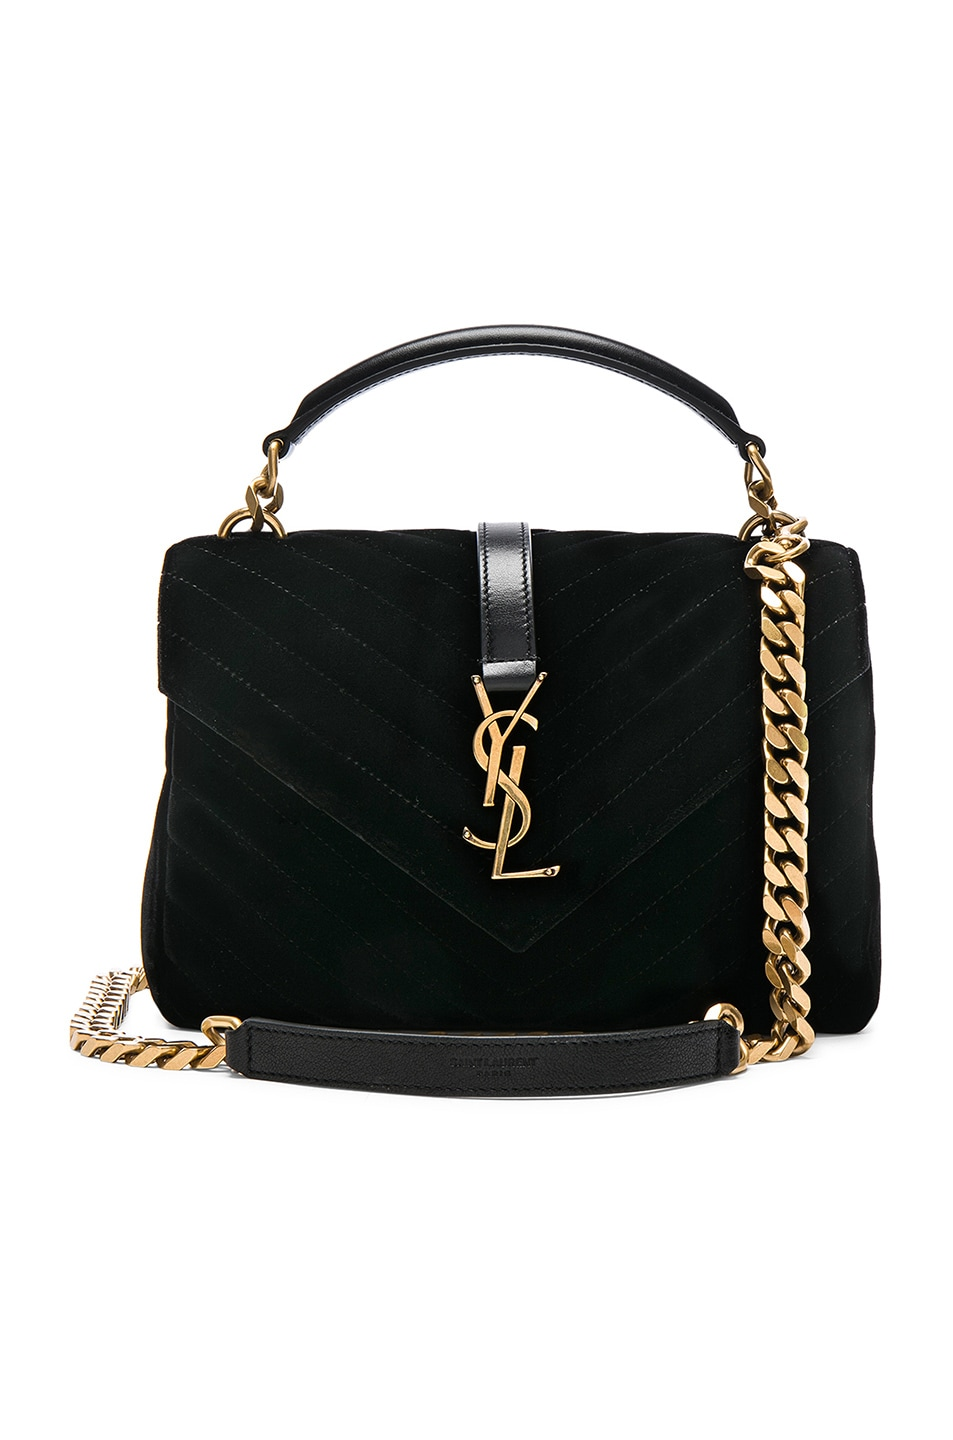 ee4c1a6c6fa7 Image 1 of Saint Laurent Medium Velvet Monogramme College Bag in Black